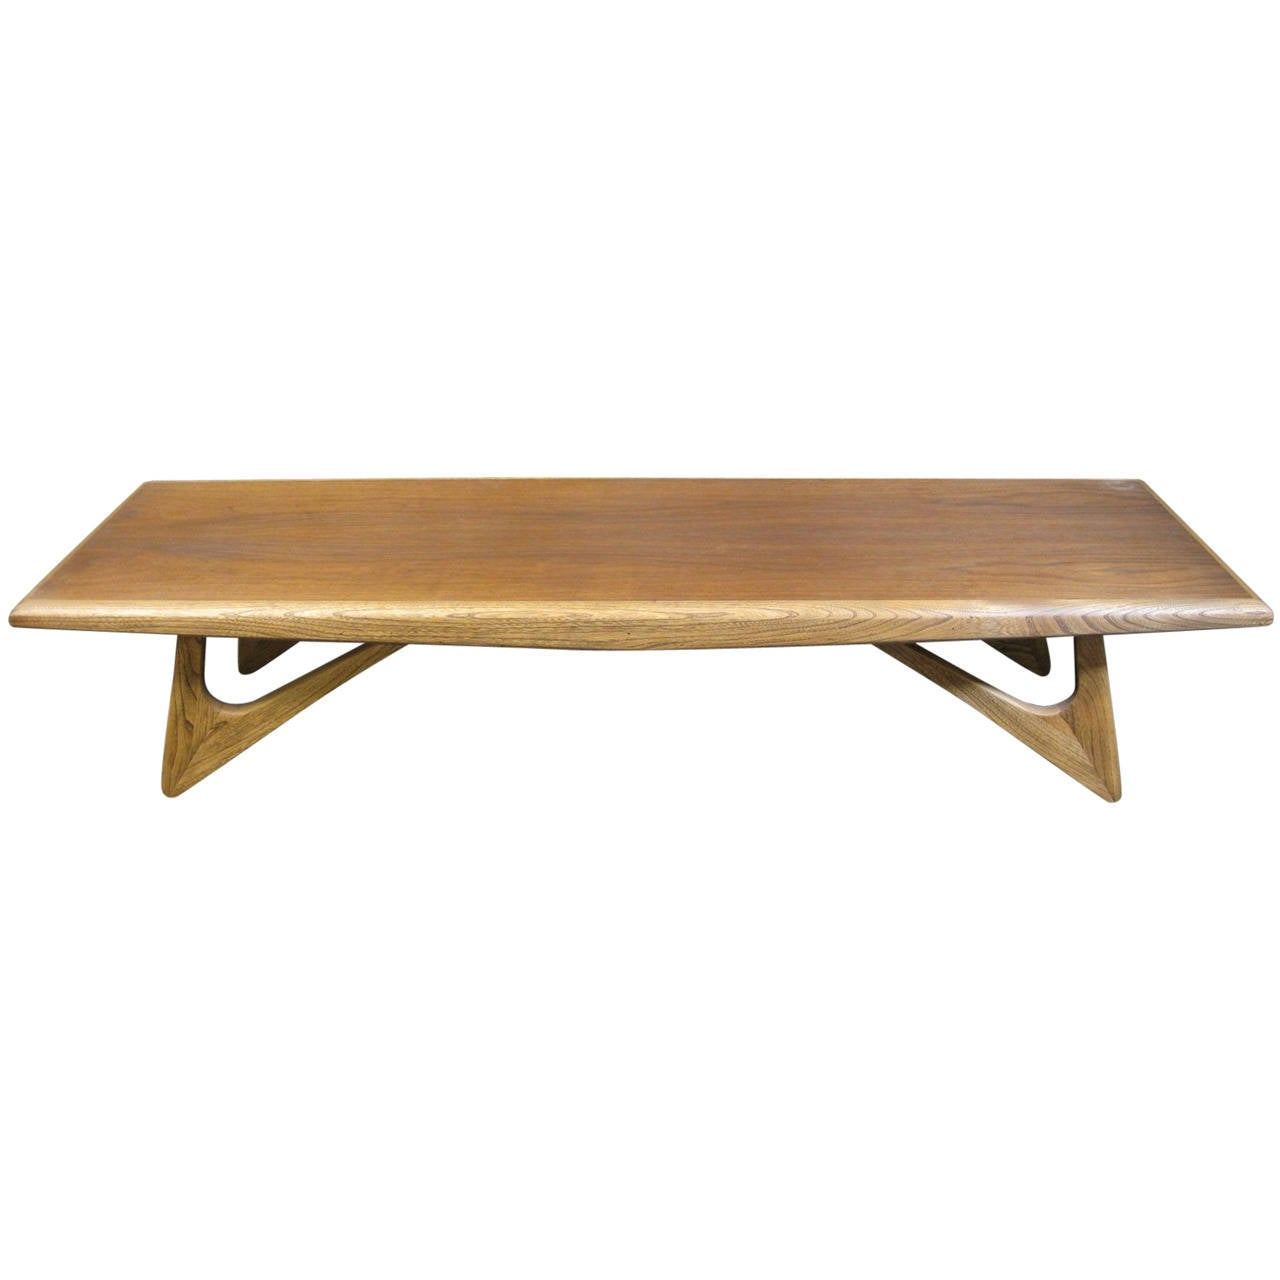 Adrian pearsall style coffee table mid century modern at 1stdibs One of a kind coffee tables